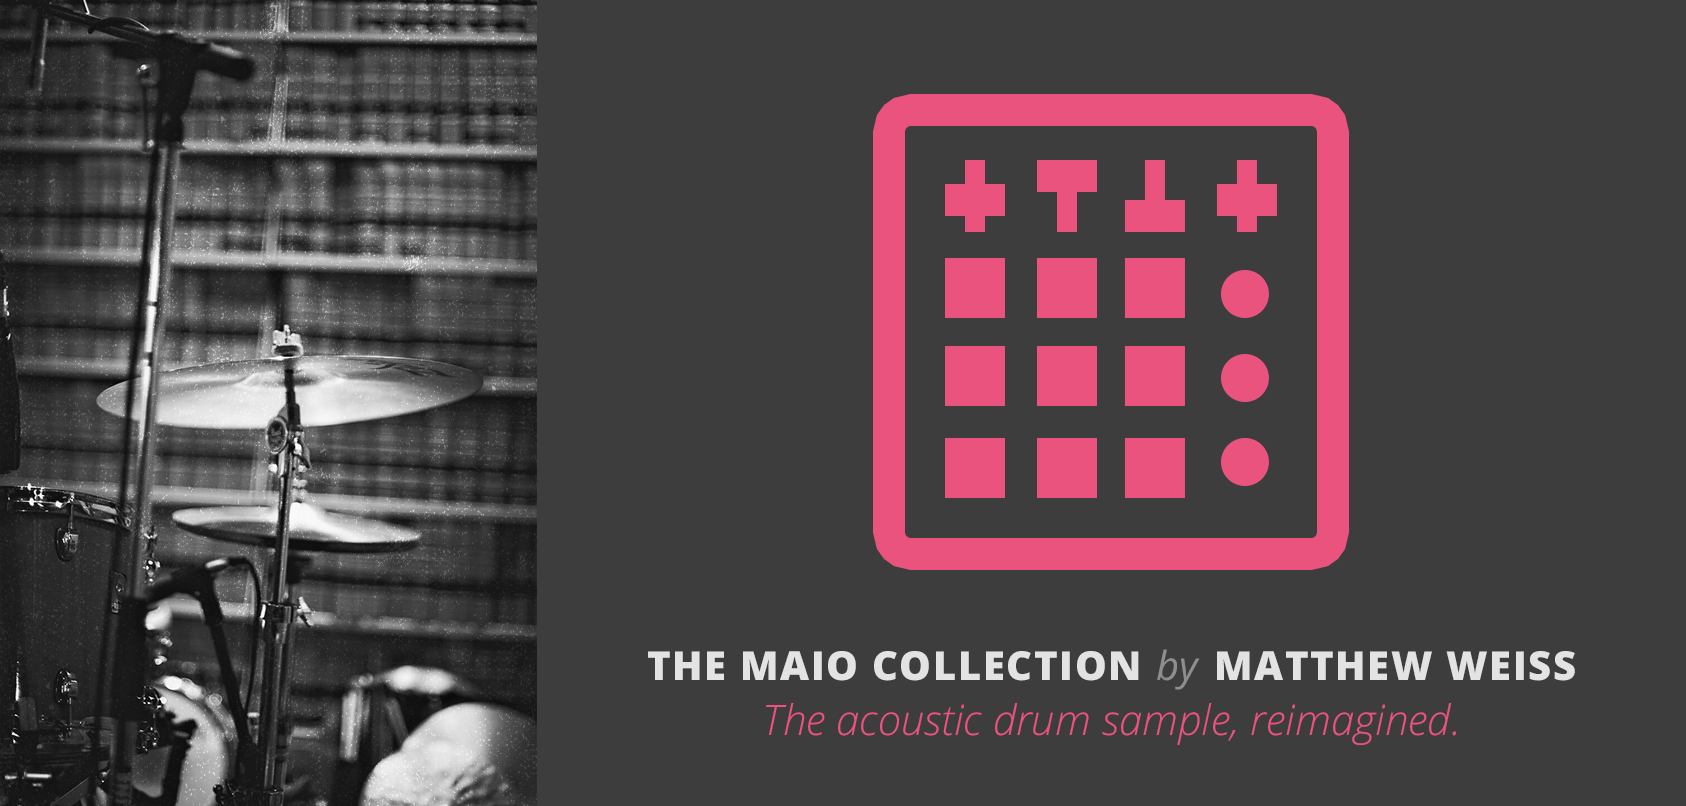 the maio collection